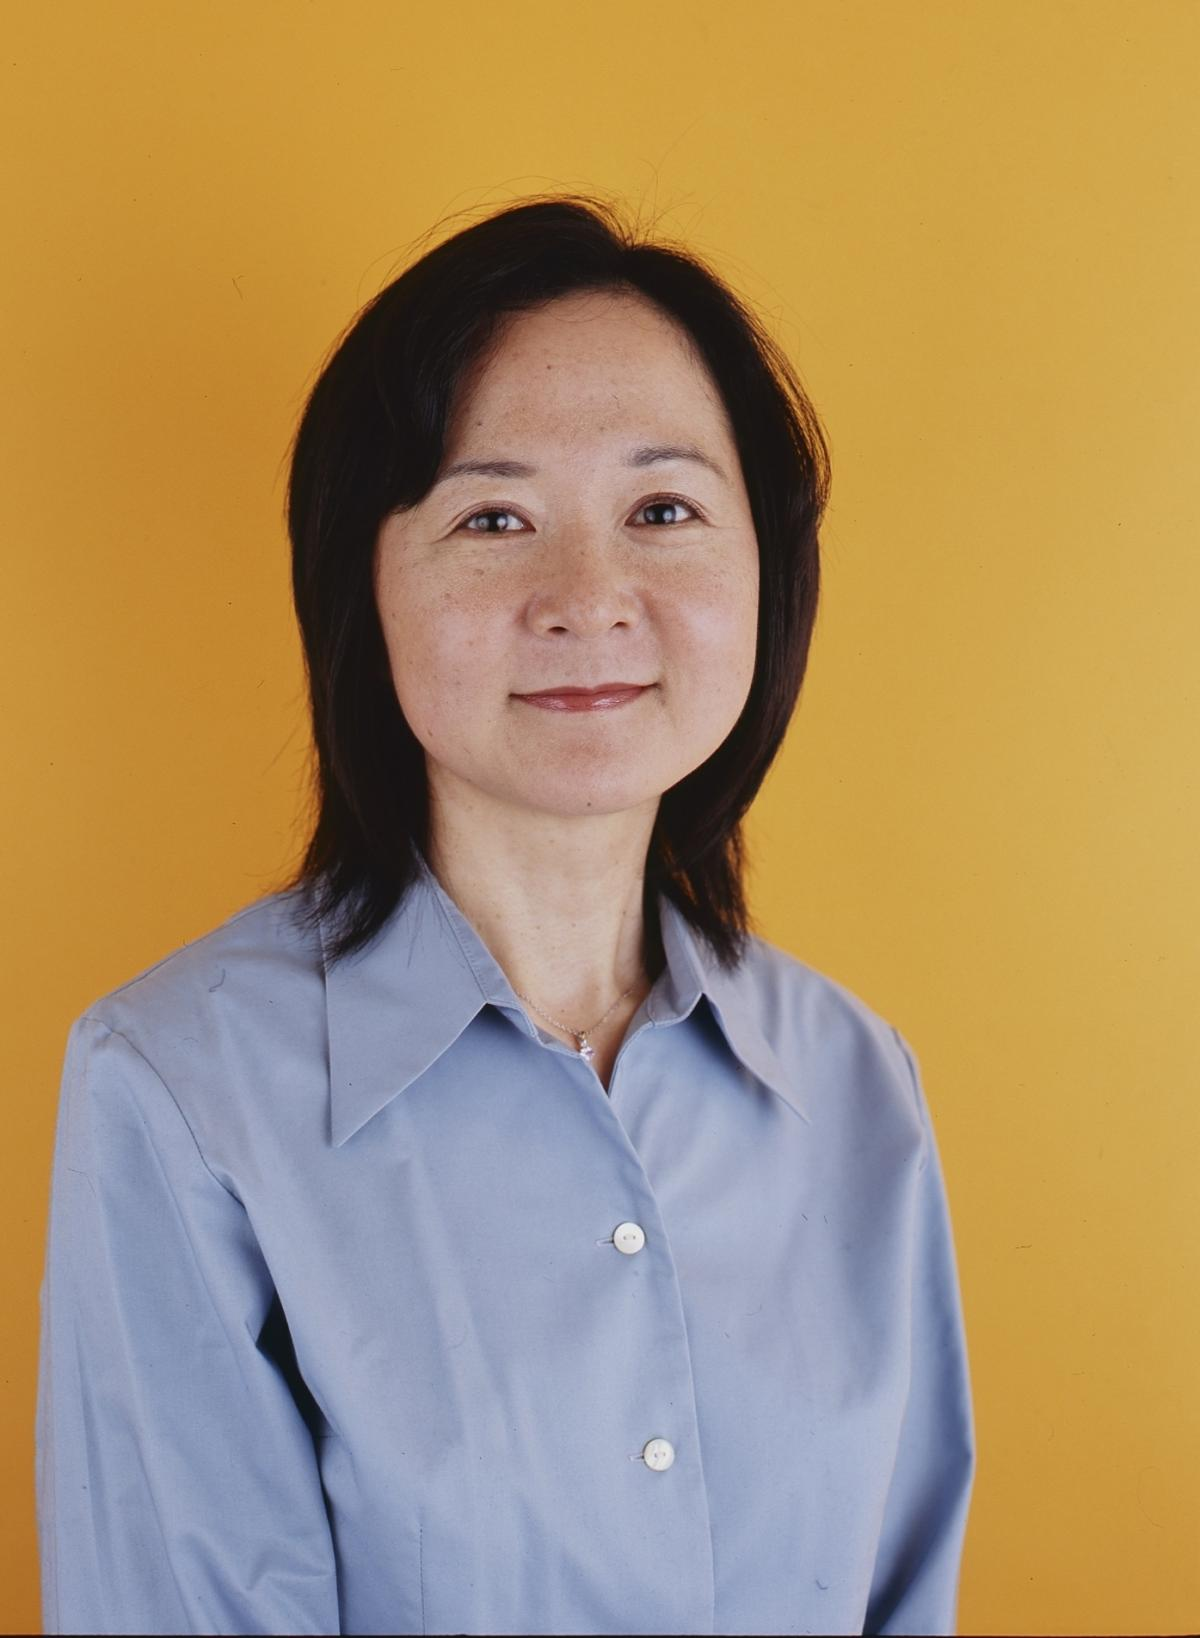 Yoko Ogawa is the award-winning author of The Housekeeper and the Professor and Hotel Iris.